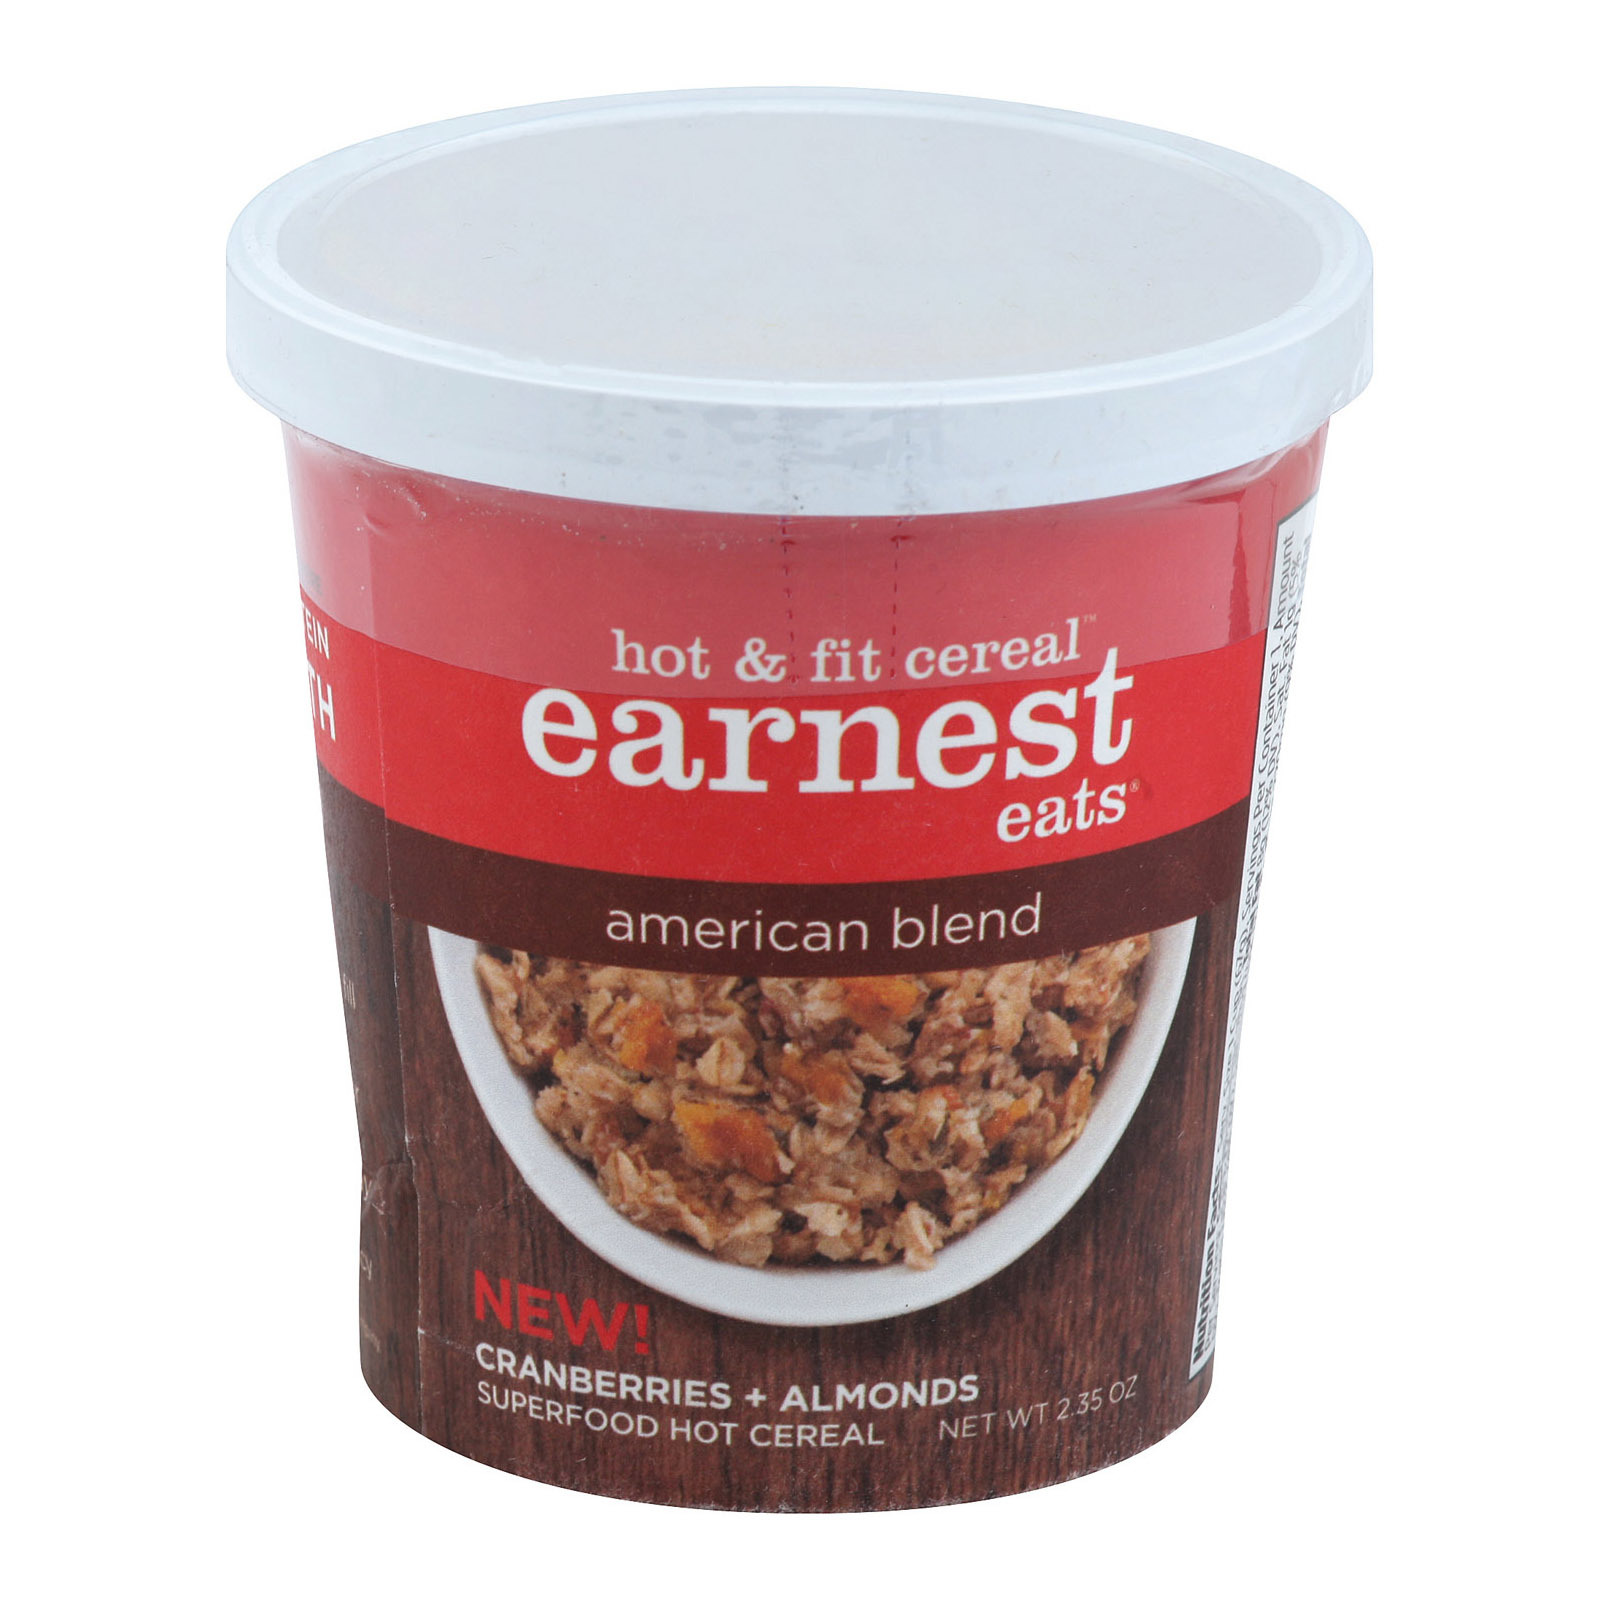 Earnest Eats American Blend Hot and Fit Cereal Cups - Case of 12 - 2.35 oz.